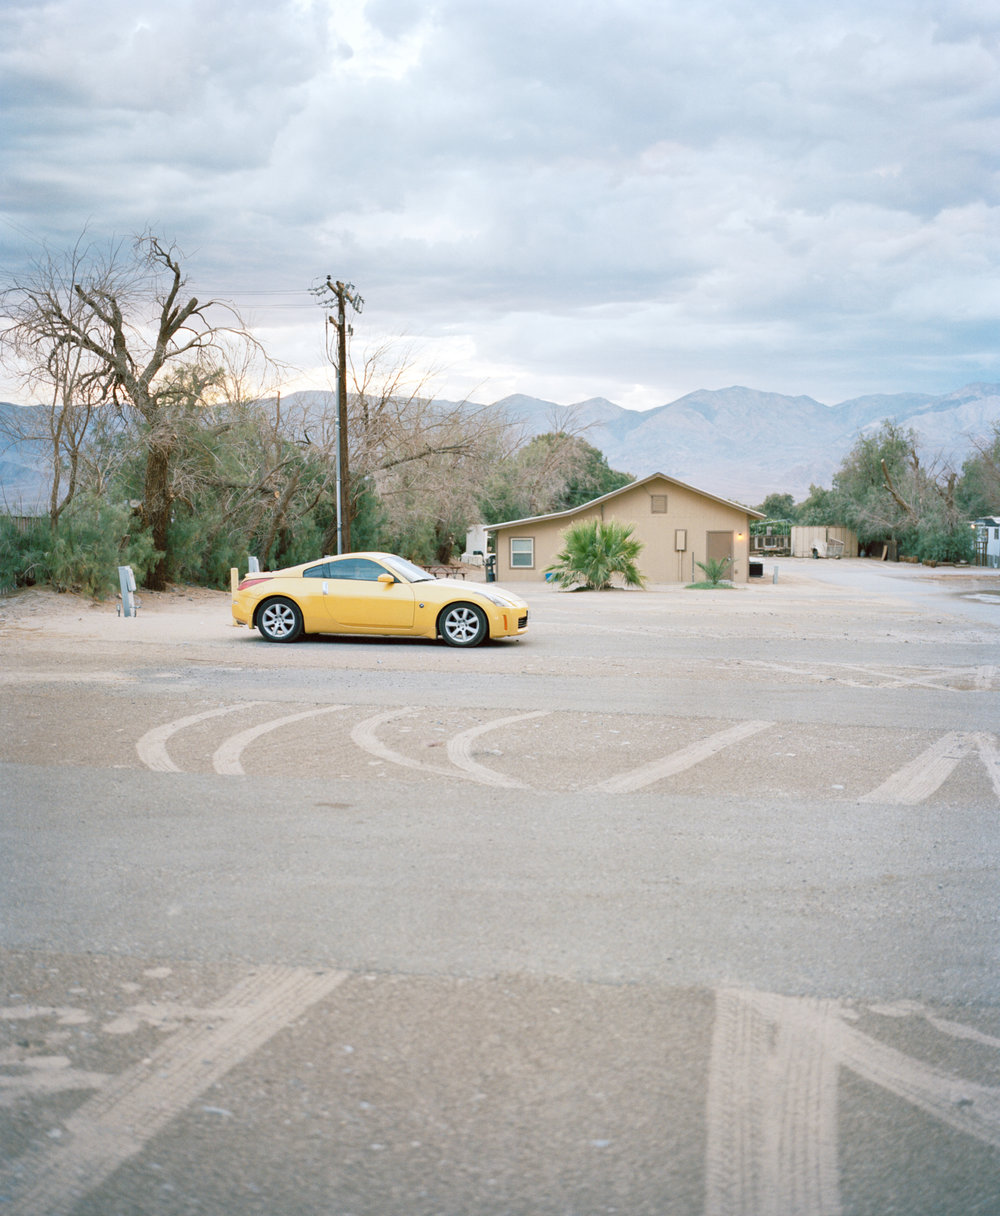 Cathy_USA_death valley_yellow car and tyre marks 001.jpg